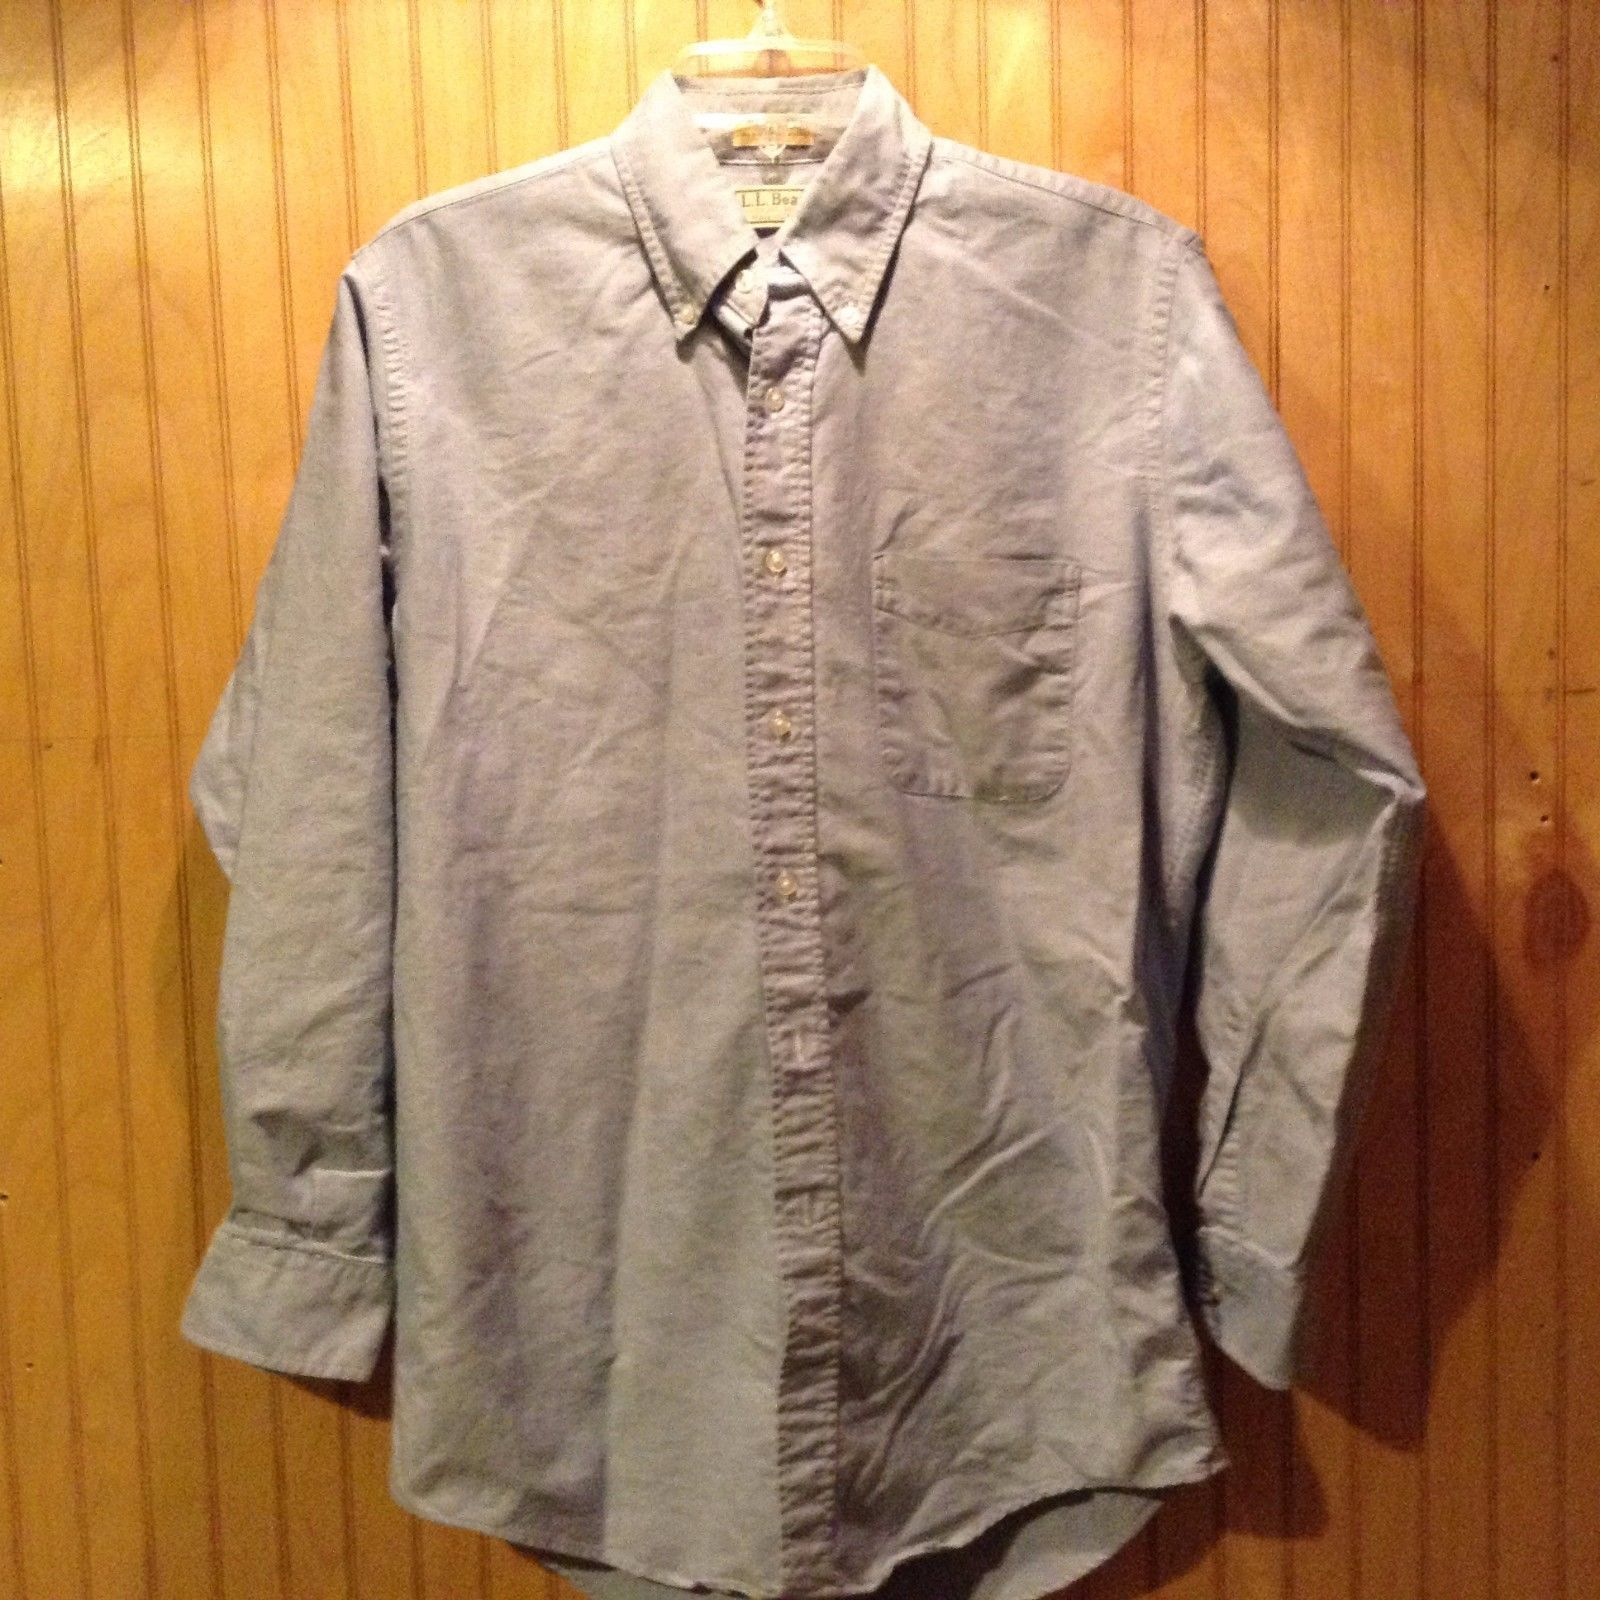 L.L. Bean Light Blue Button-Up Men's Shirt Casual Long Sleeve Made in USA Cotton